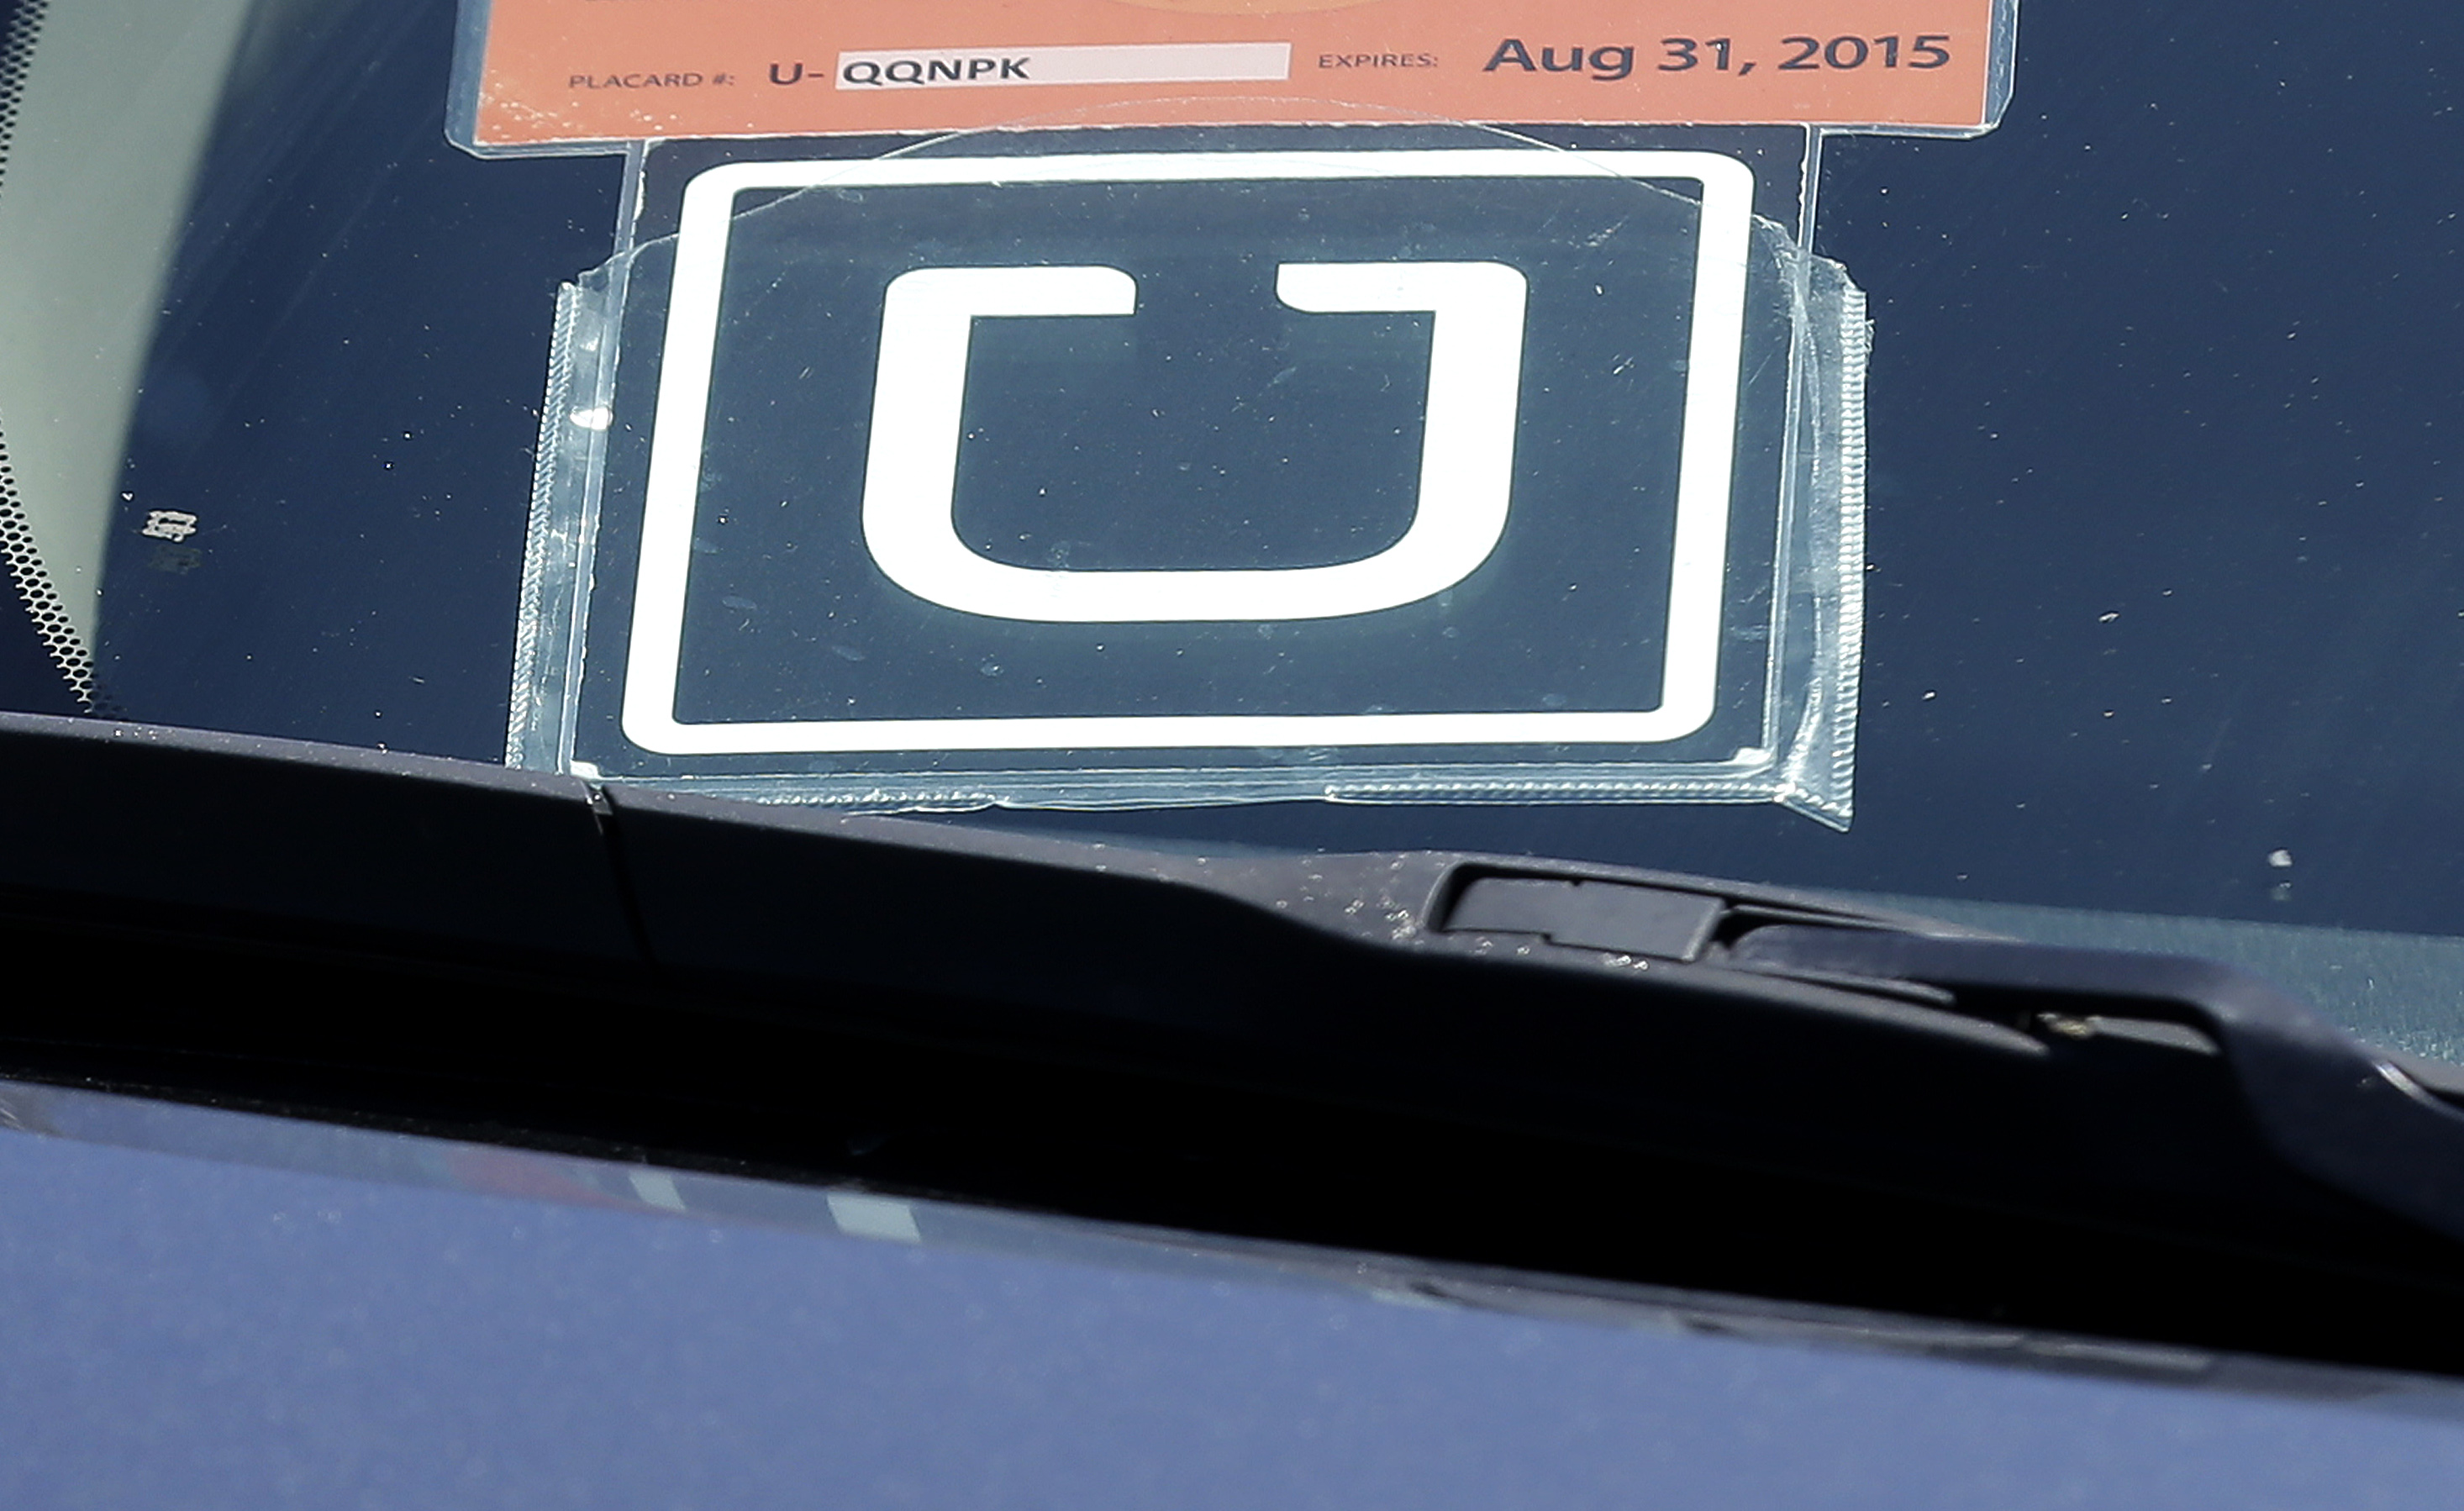 Uber prepares riders for Halloween safety, surge pricing